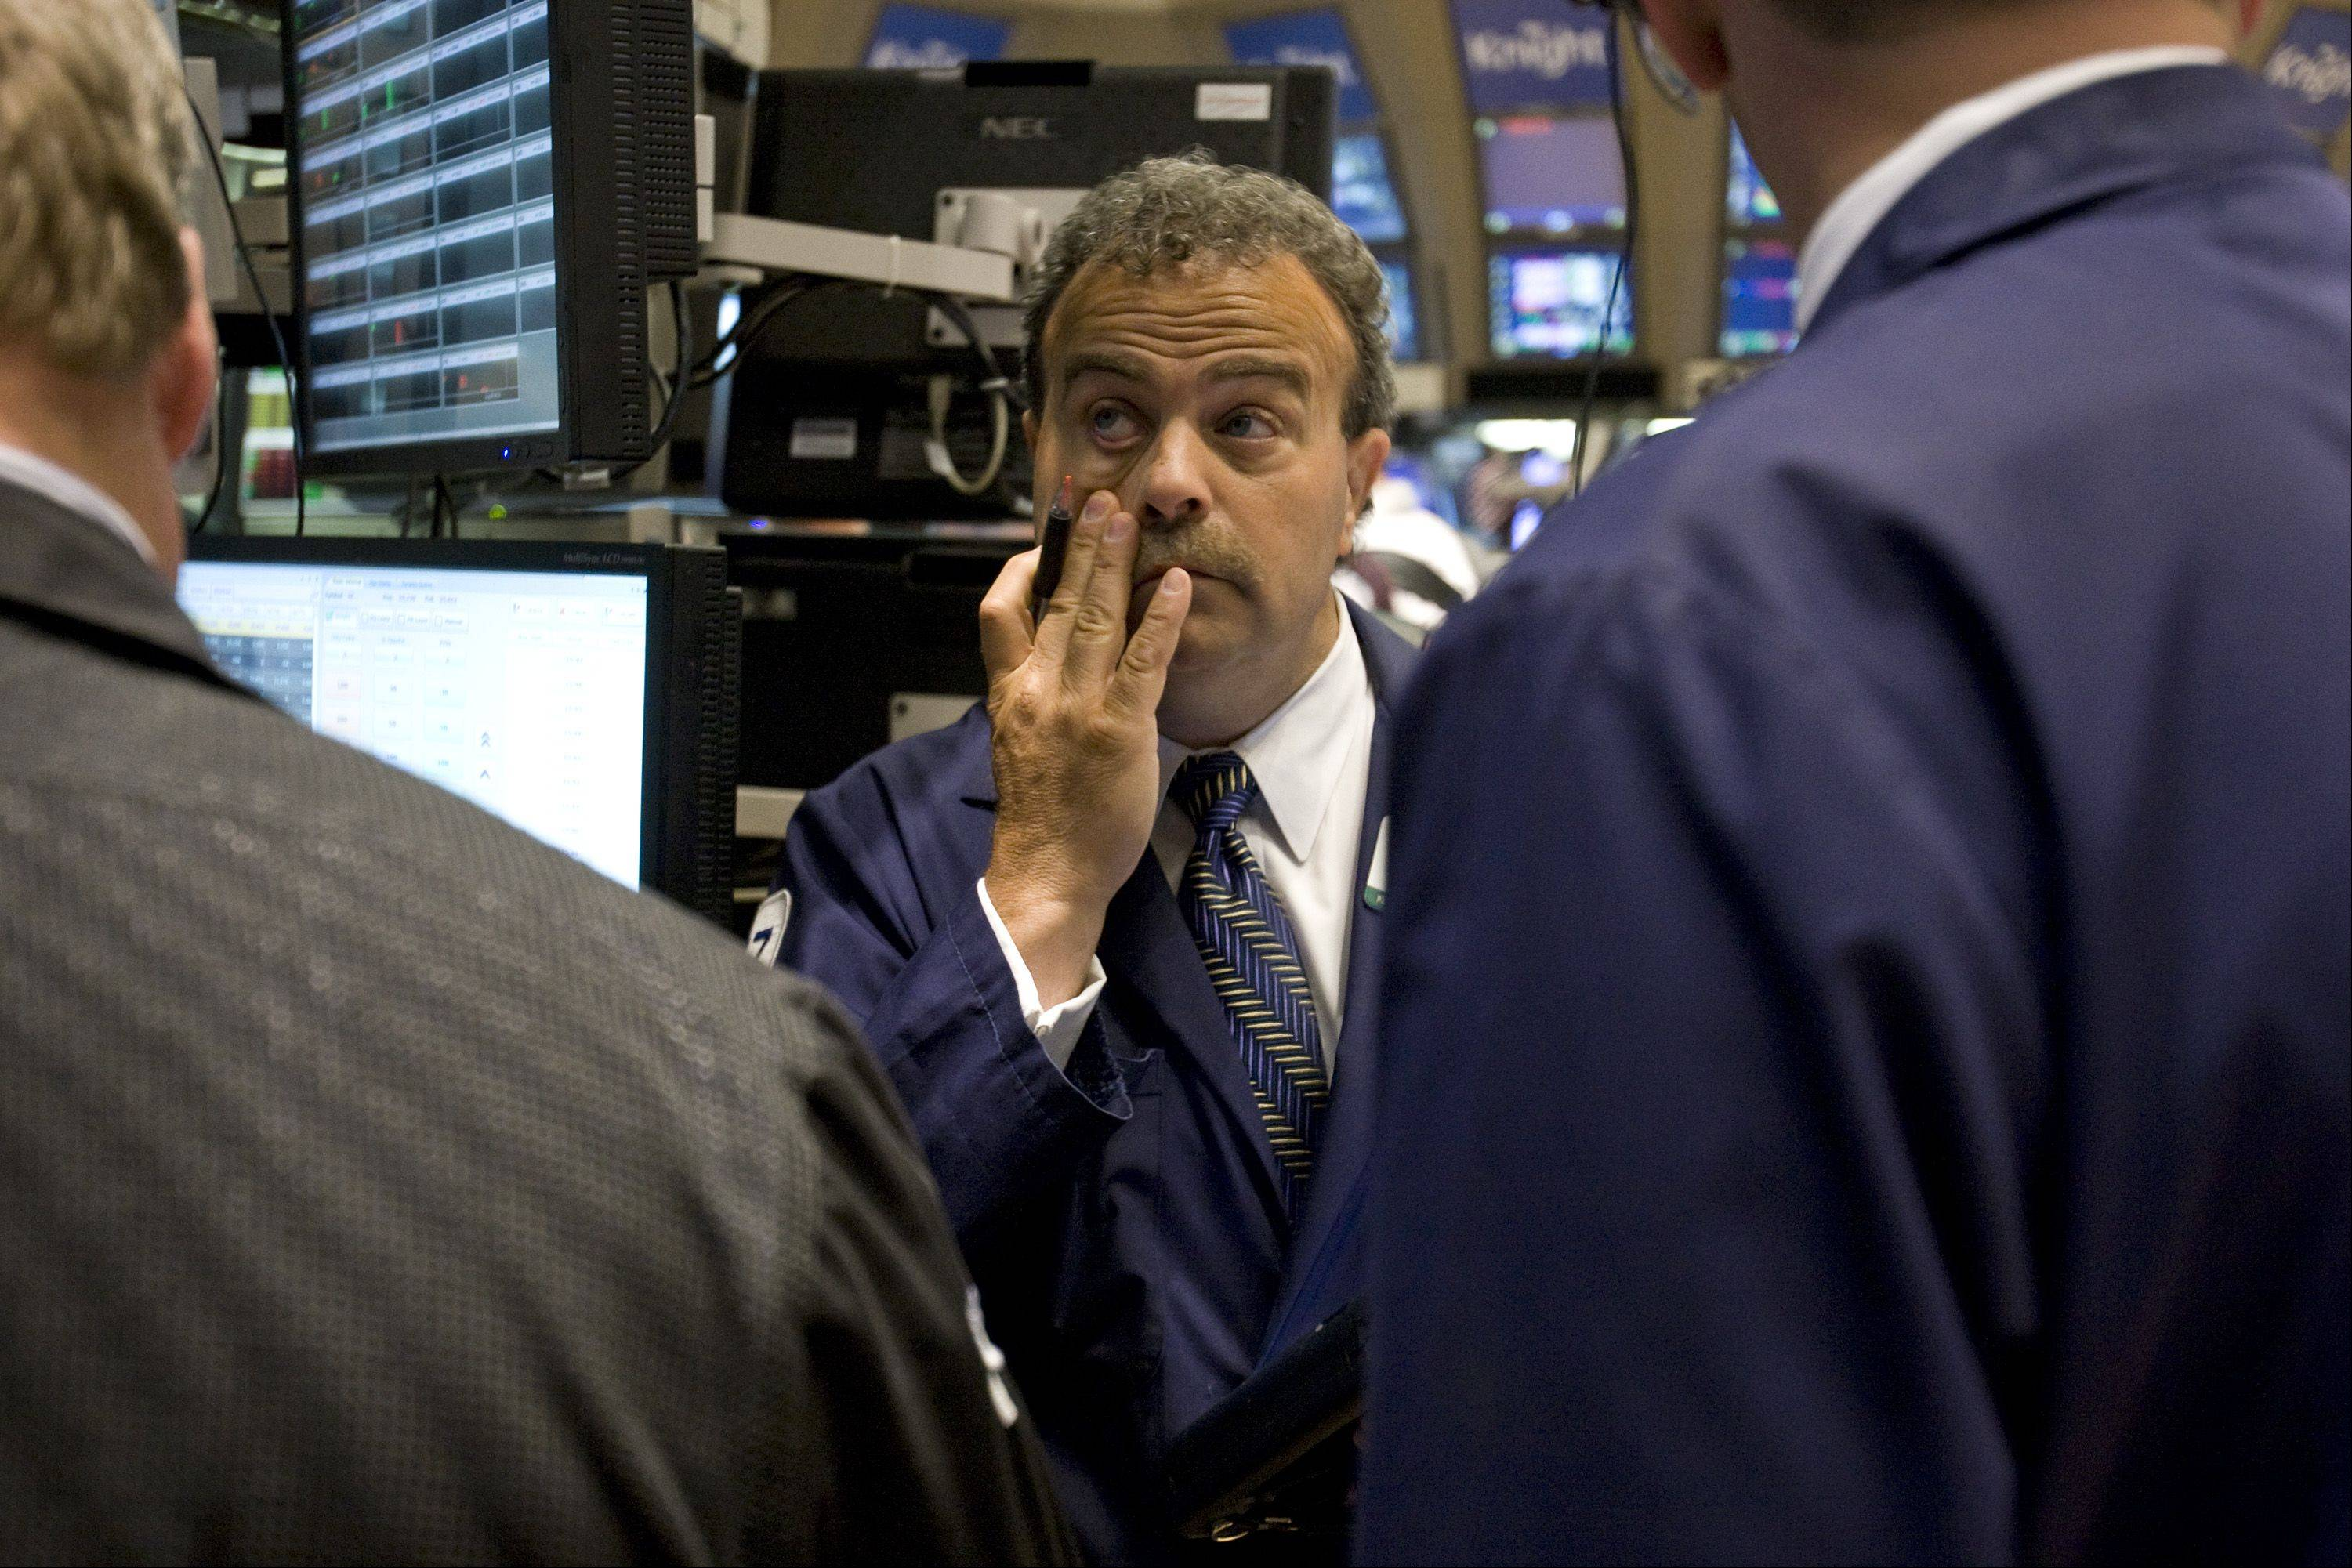 Traders work on the floor of the New York Stock Exchange (NYSE) in New York, U.S., on Monday, Aug. 8, 2011. U.S. stock futures retreated, following the biggest weekly drop in the Standard & Poor's 500 Index since 2008, amid concern that a downgrade of the nation's credit rating by S&P may worsen an economic slowdown.